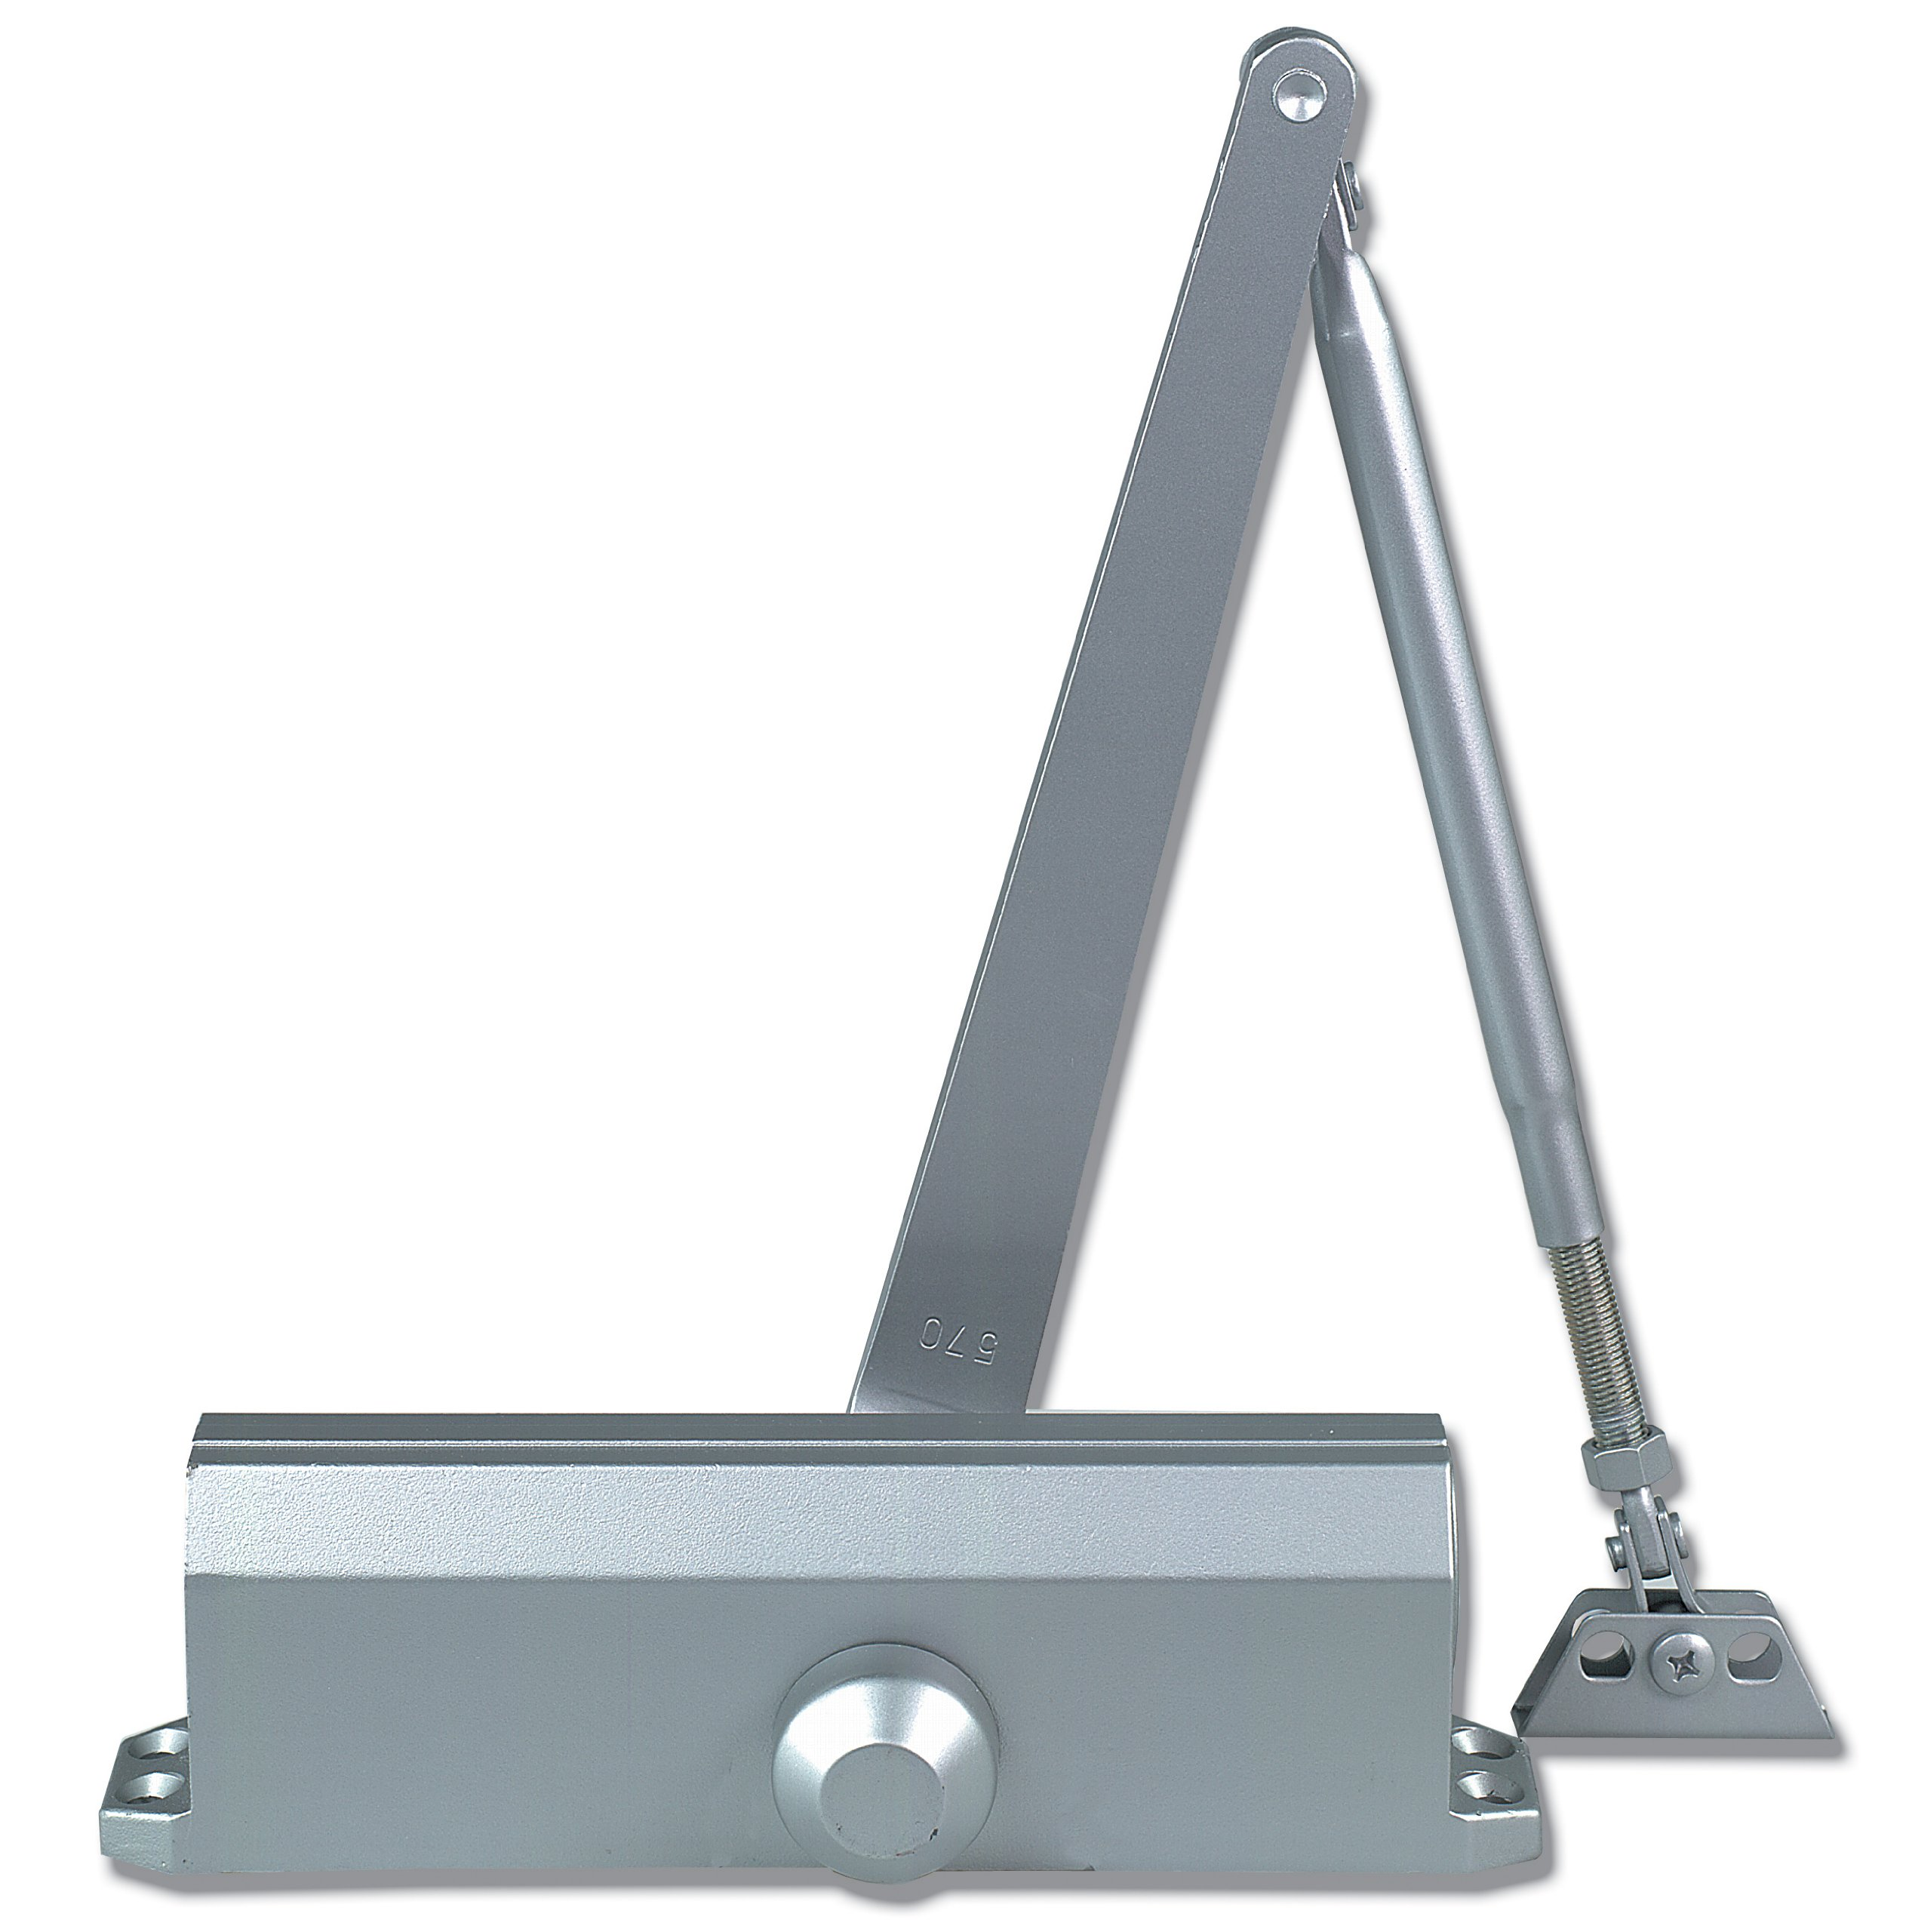 Global Door Controls Compact Commercial Door Closer in Aluminum with Adjustable Spring Tension and Backcheck - Size 5